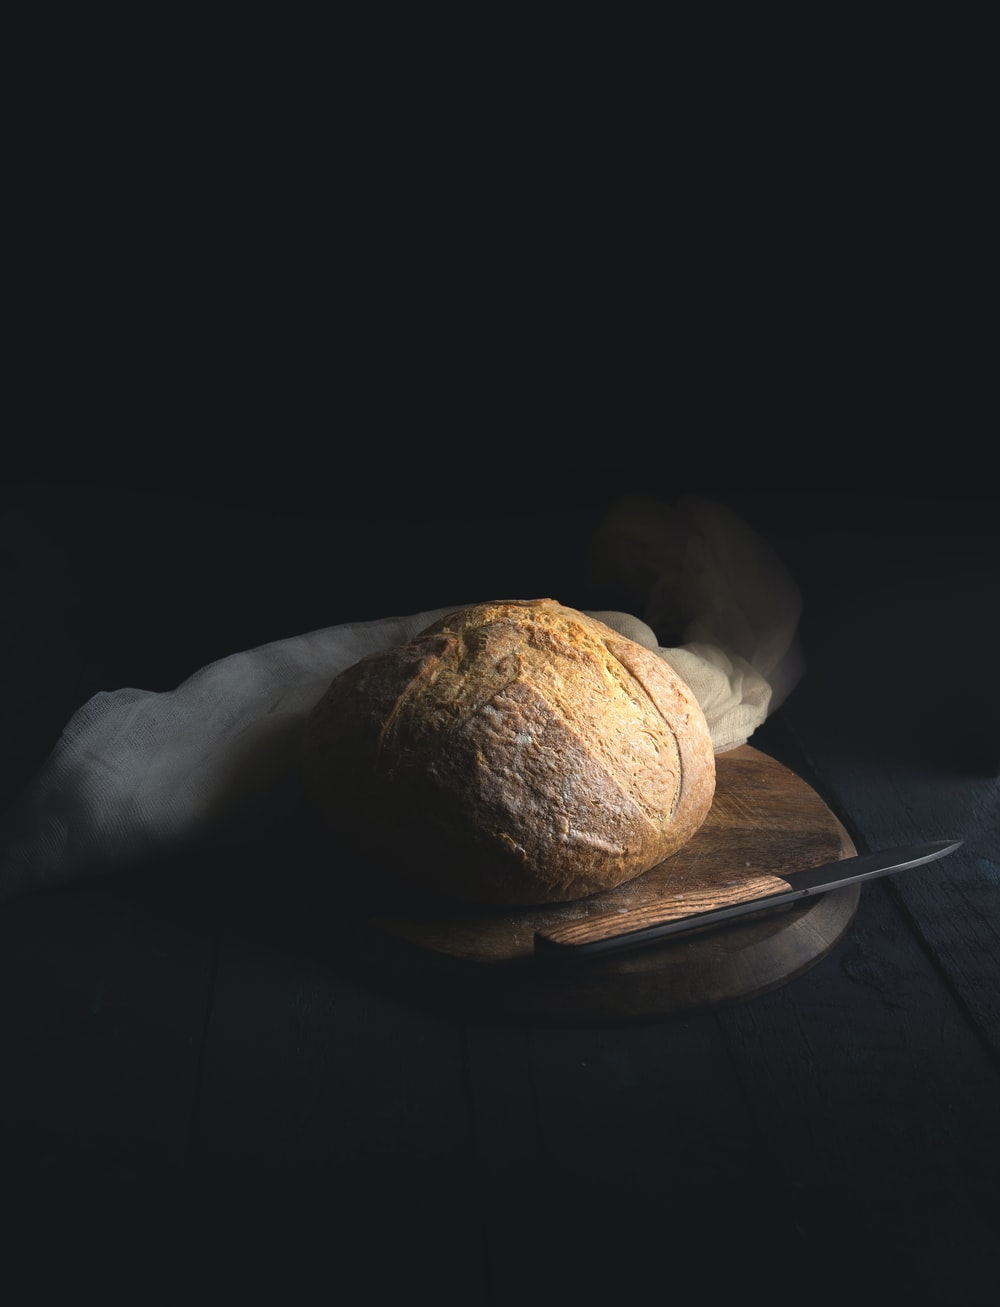 baked bread beside knife on wooden board